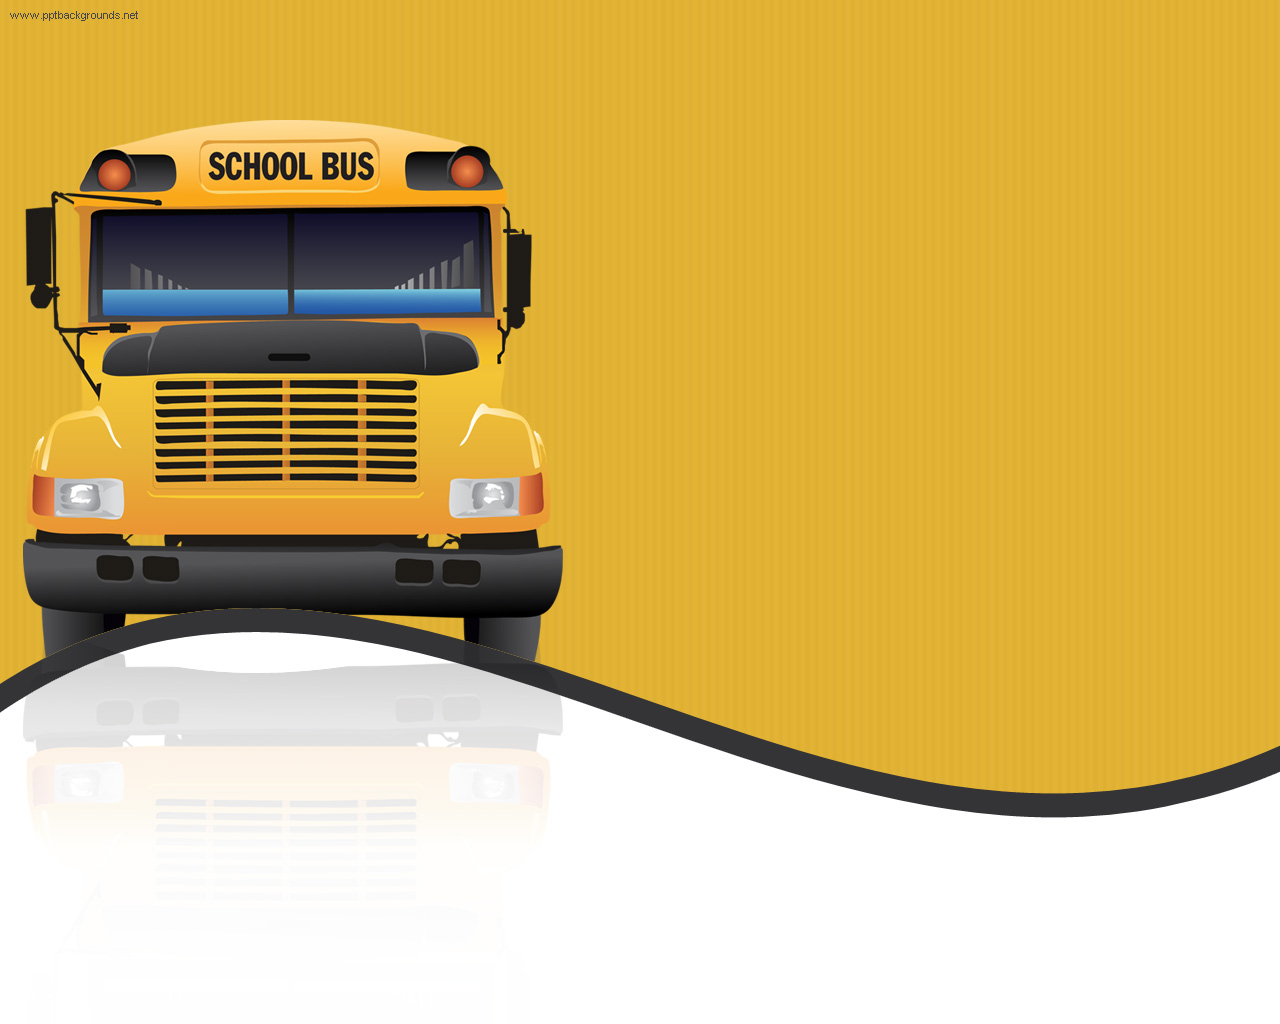 School Bus Transportation Backgrounds For PowerPoint   Education 1280x1024